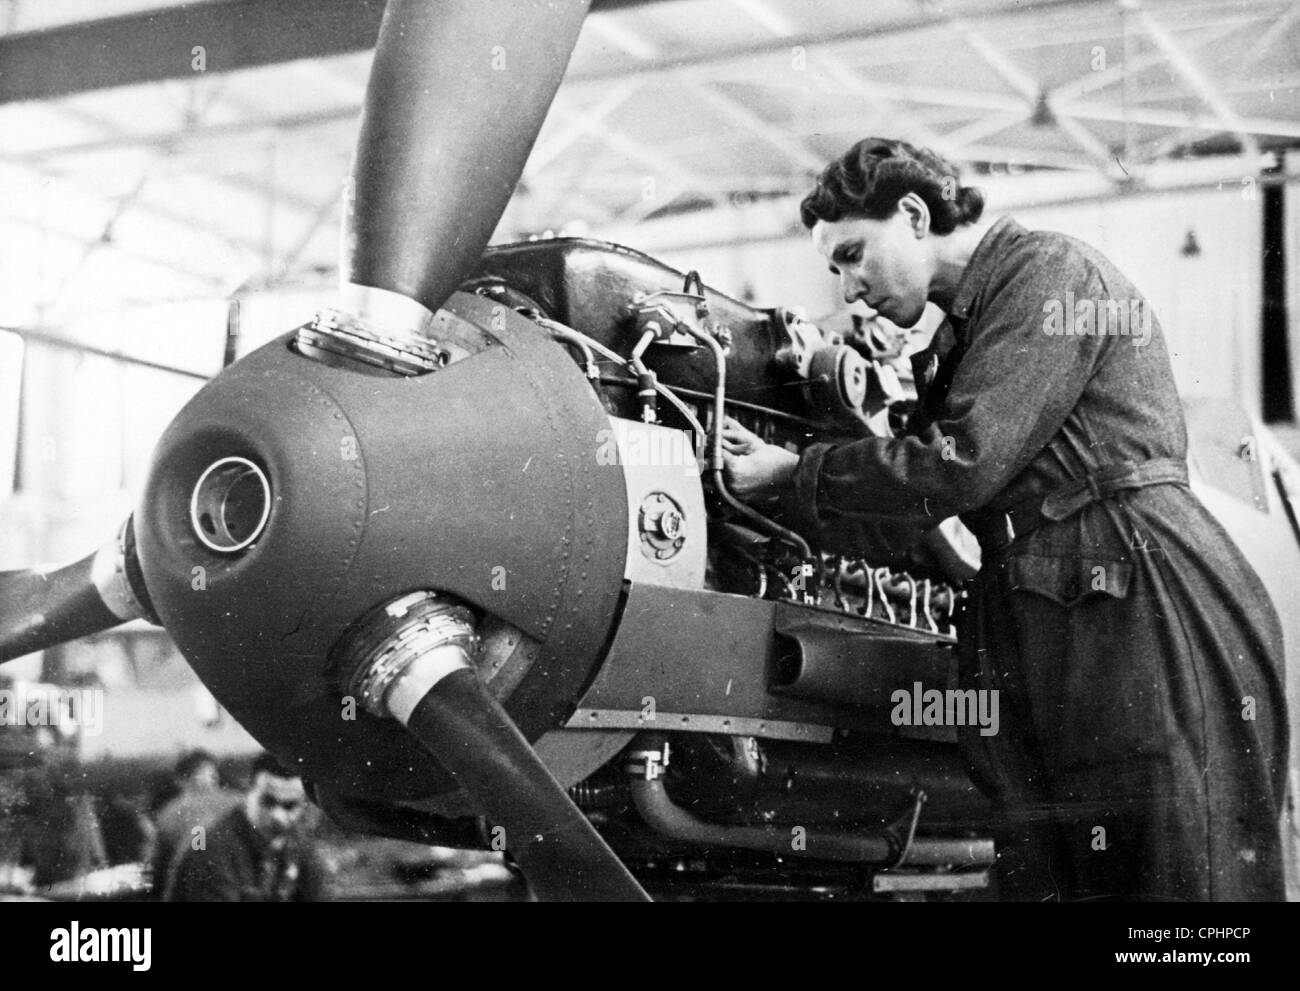 Production of Fighter Planes in Germany - Stock Image